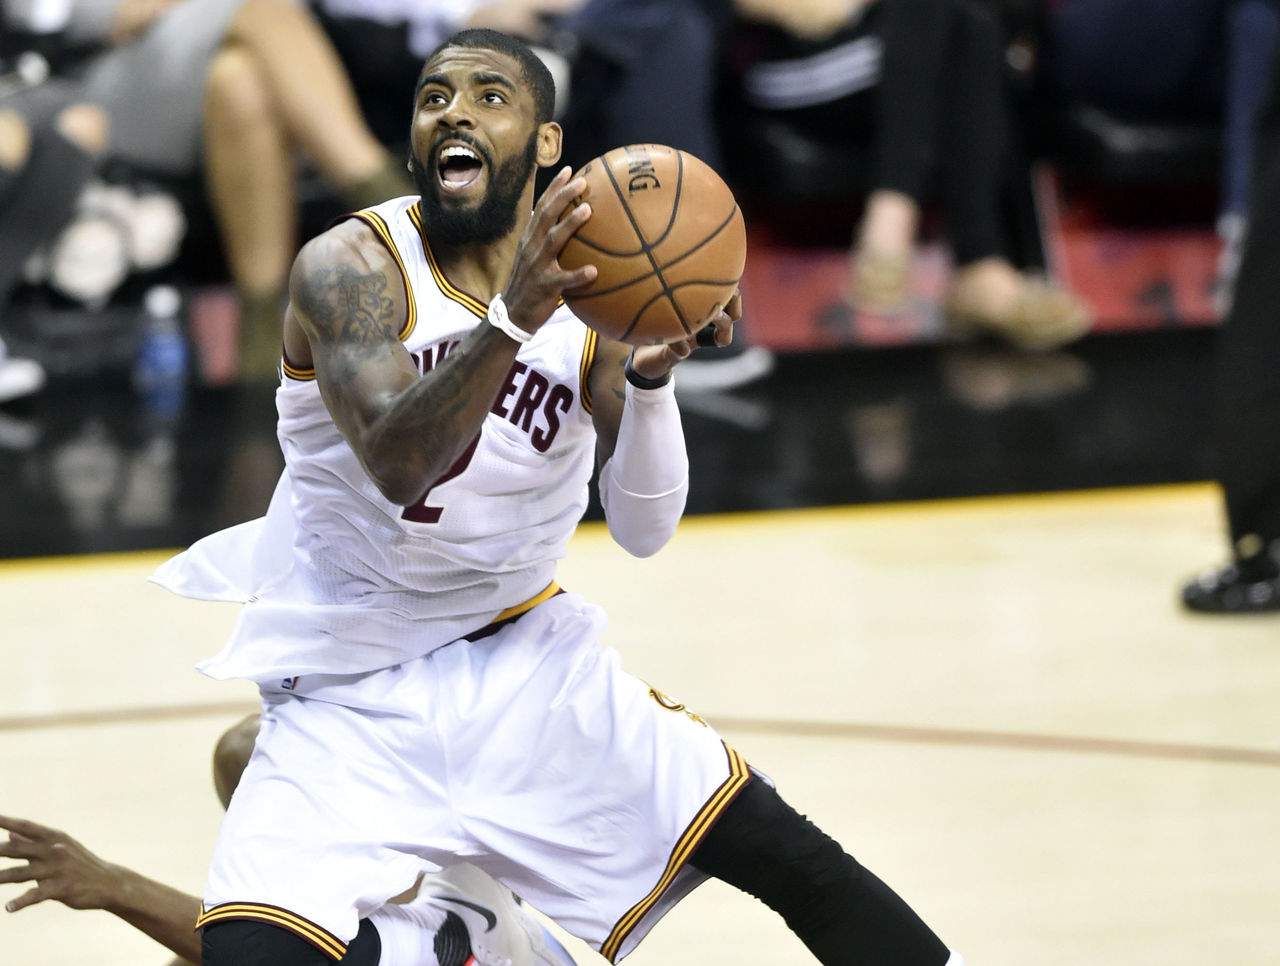 Watch: Irving fakes Crowder en route to setting playoff career high | theScore.com